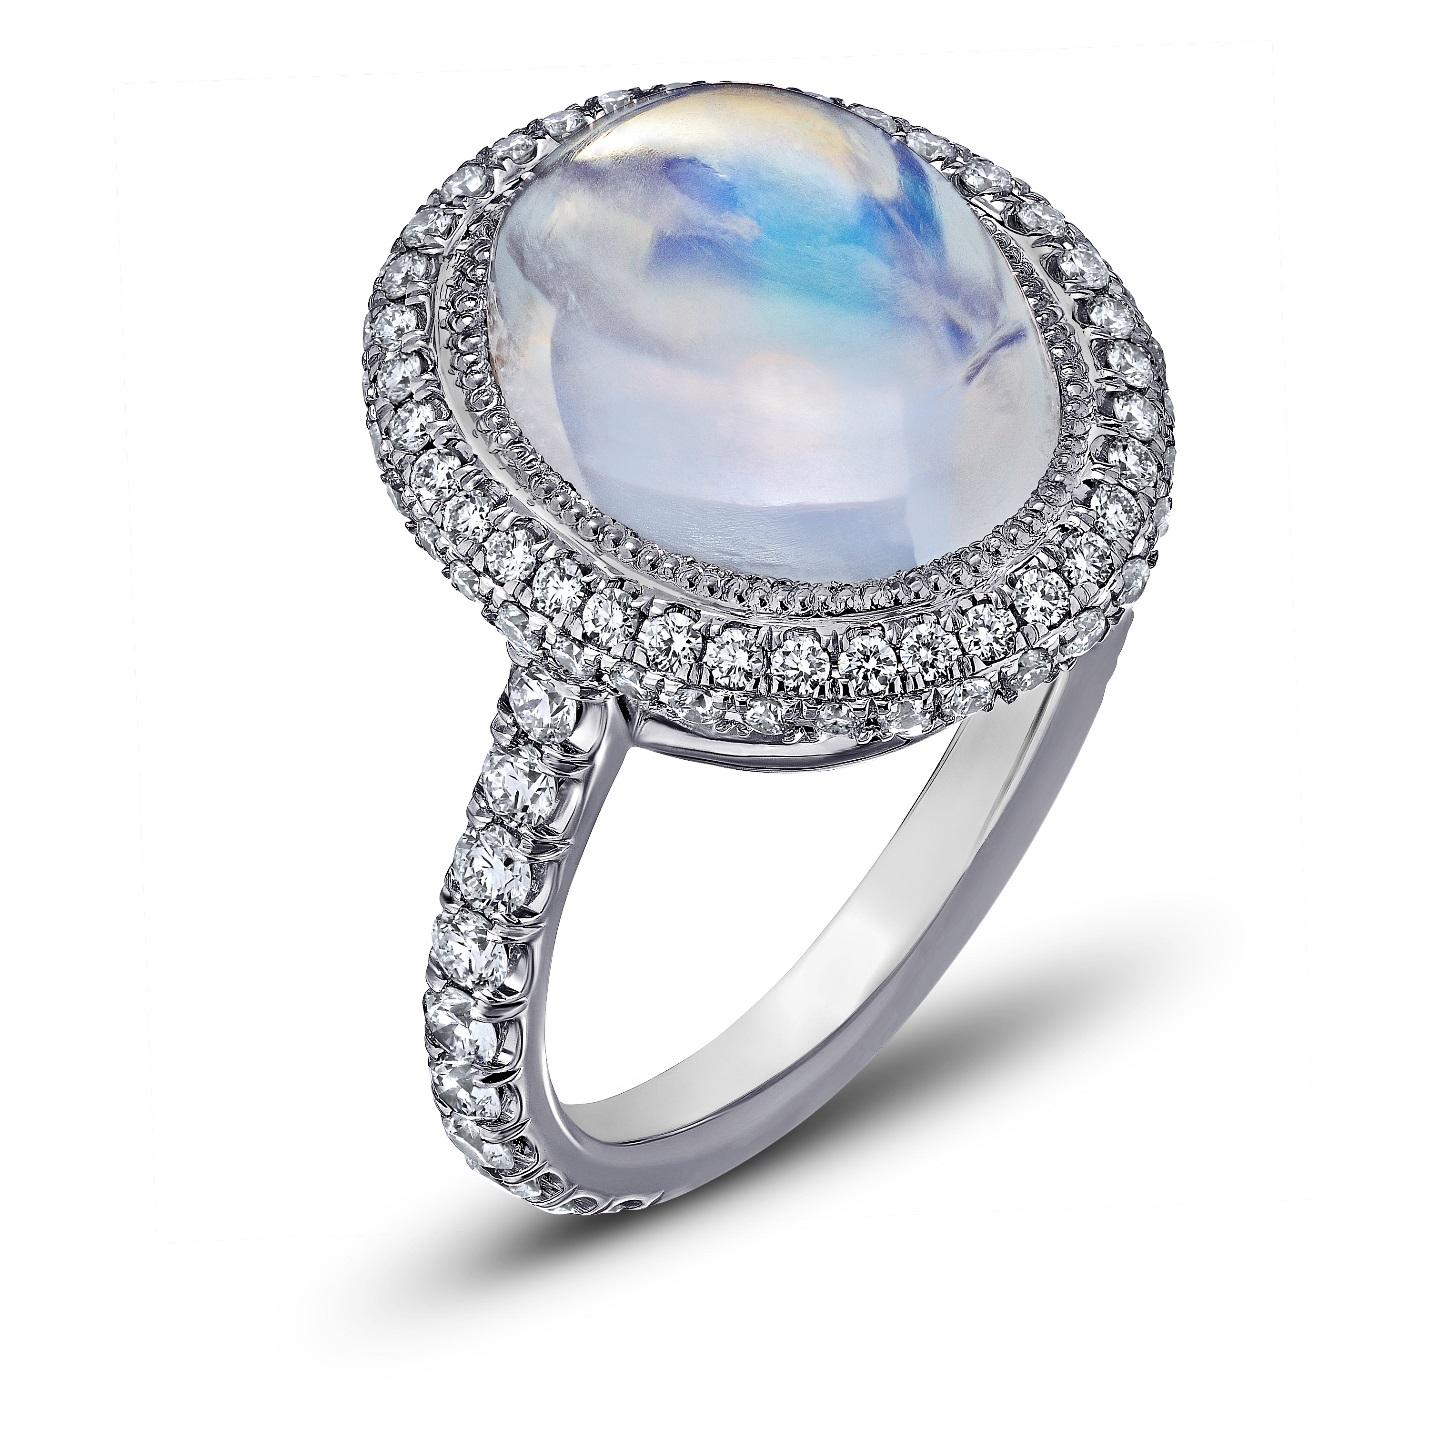 ROYAL BLUE OVAL MOONSTONE & DIAMOND MICRO PAVE RING CRAFTED IN PLATINUM, 7.26 CTW